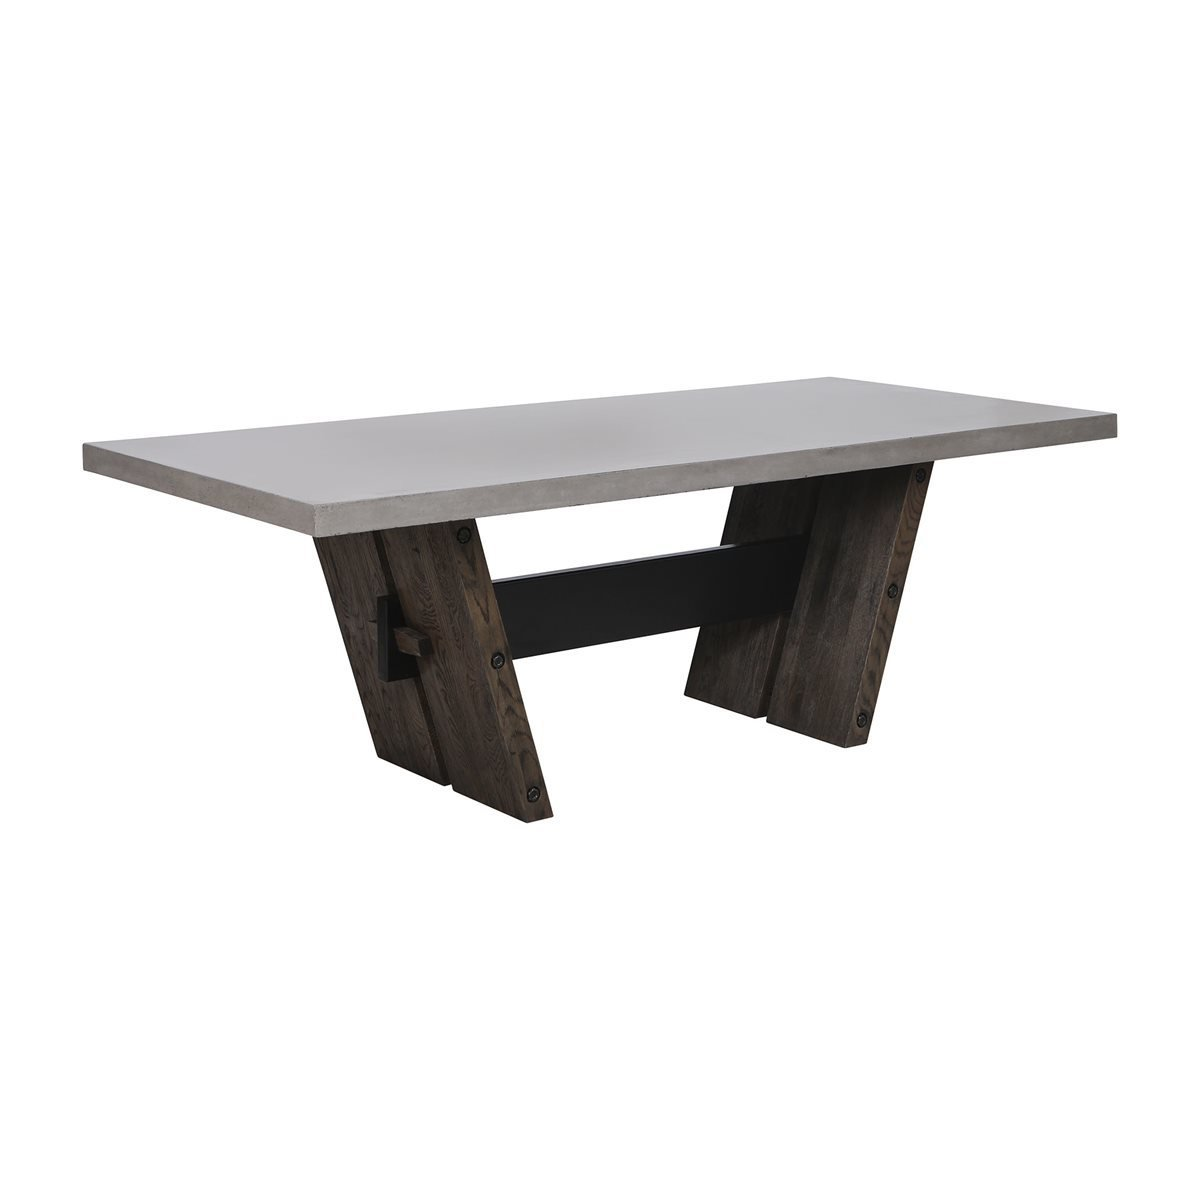 Hoss Concrete and Wood Dining Table